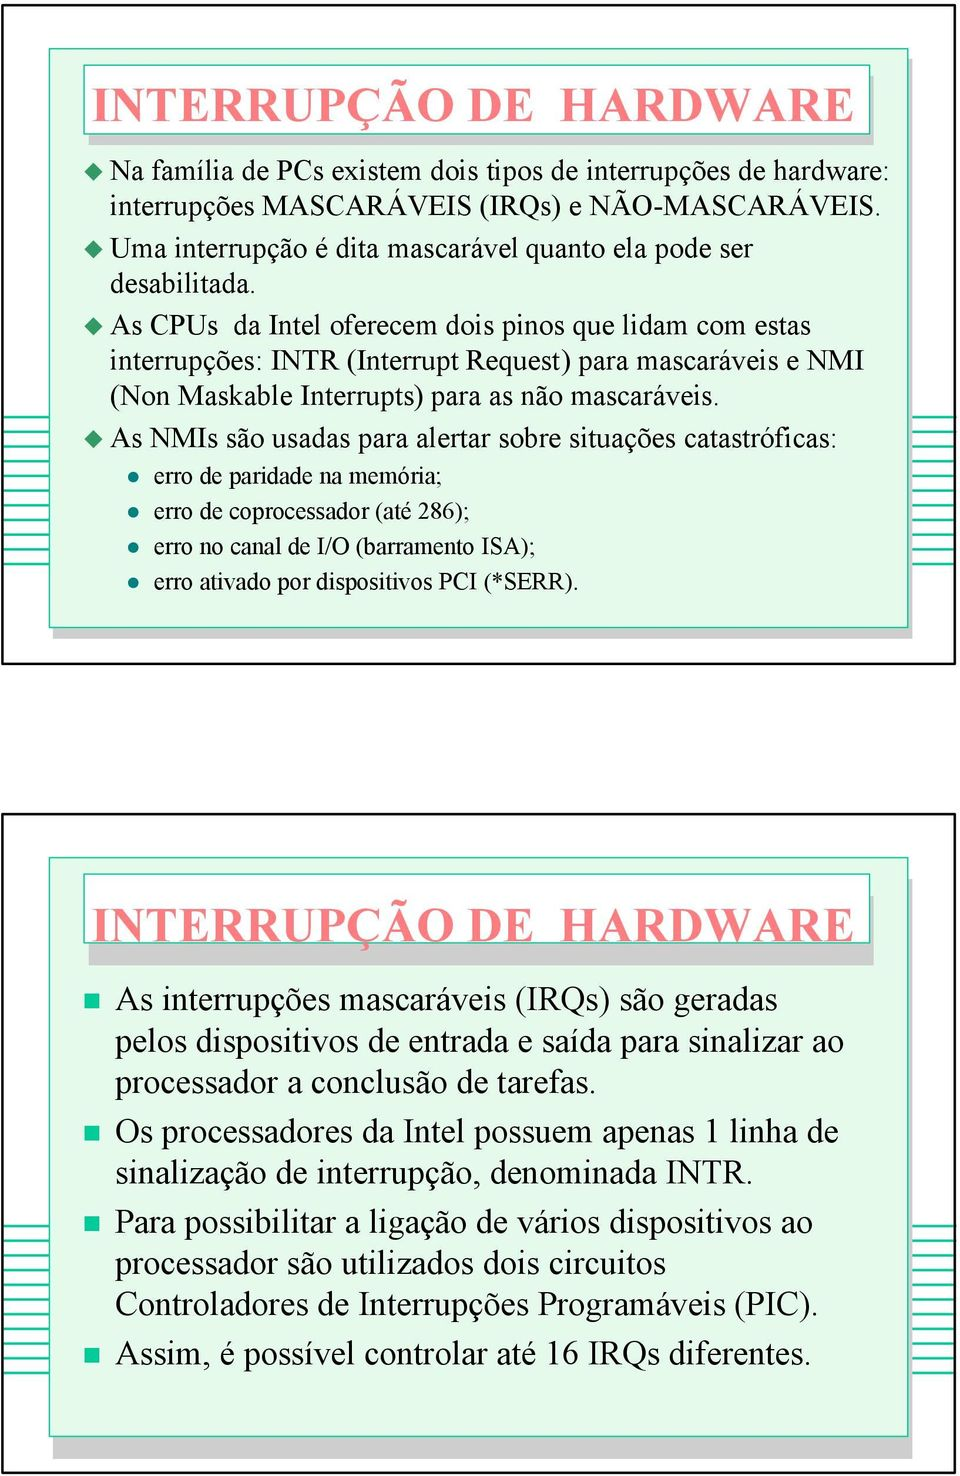 As CPUs da Intel oferecem dois pinos que lidam com estas interrupções: INTR (Interrupt Request) para mascaráveis e NMI (Non Maskable Interrupts) para as não mascaráveis.